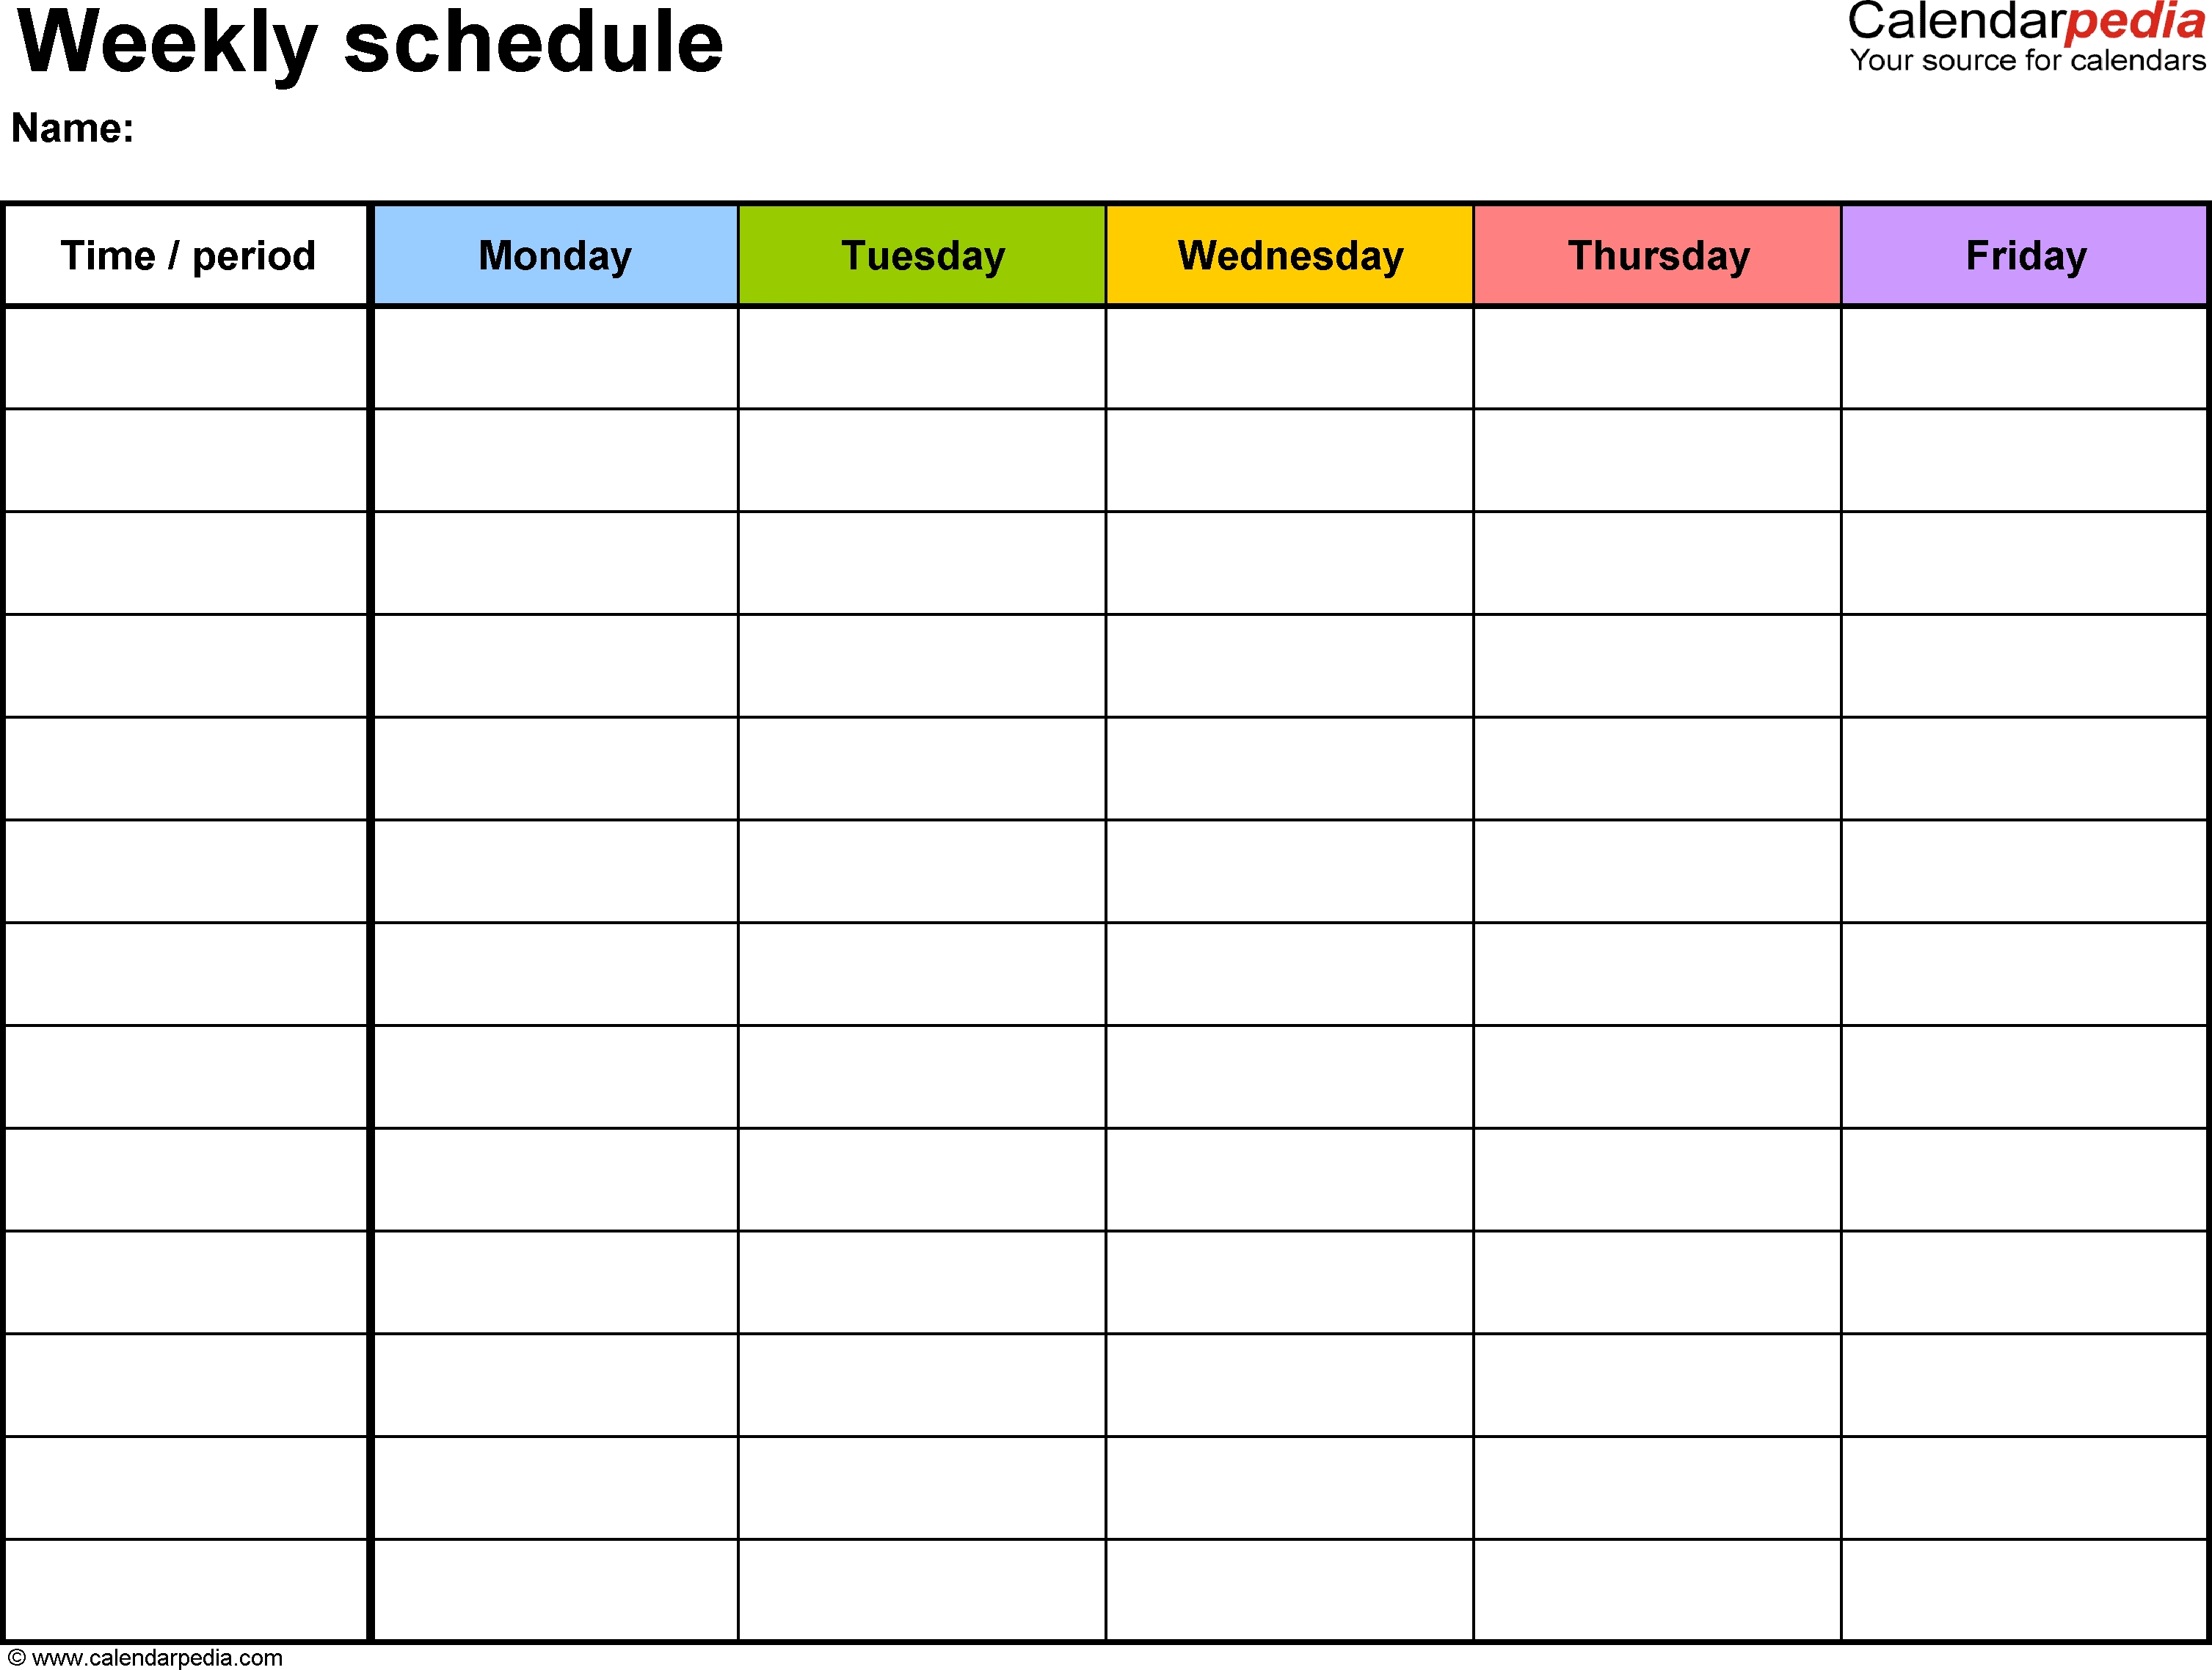 Free Weekly Schedule Templates For Word - 18 Templates  Weekly Schedule Monday Through Friday